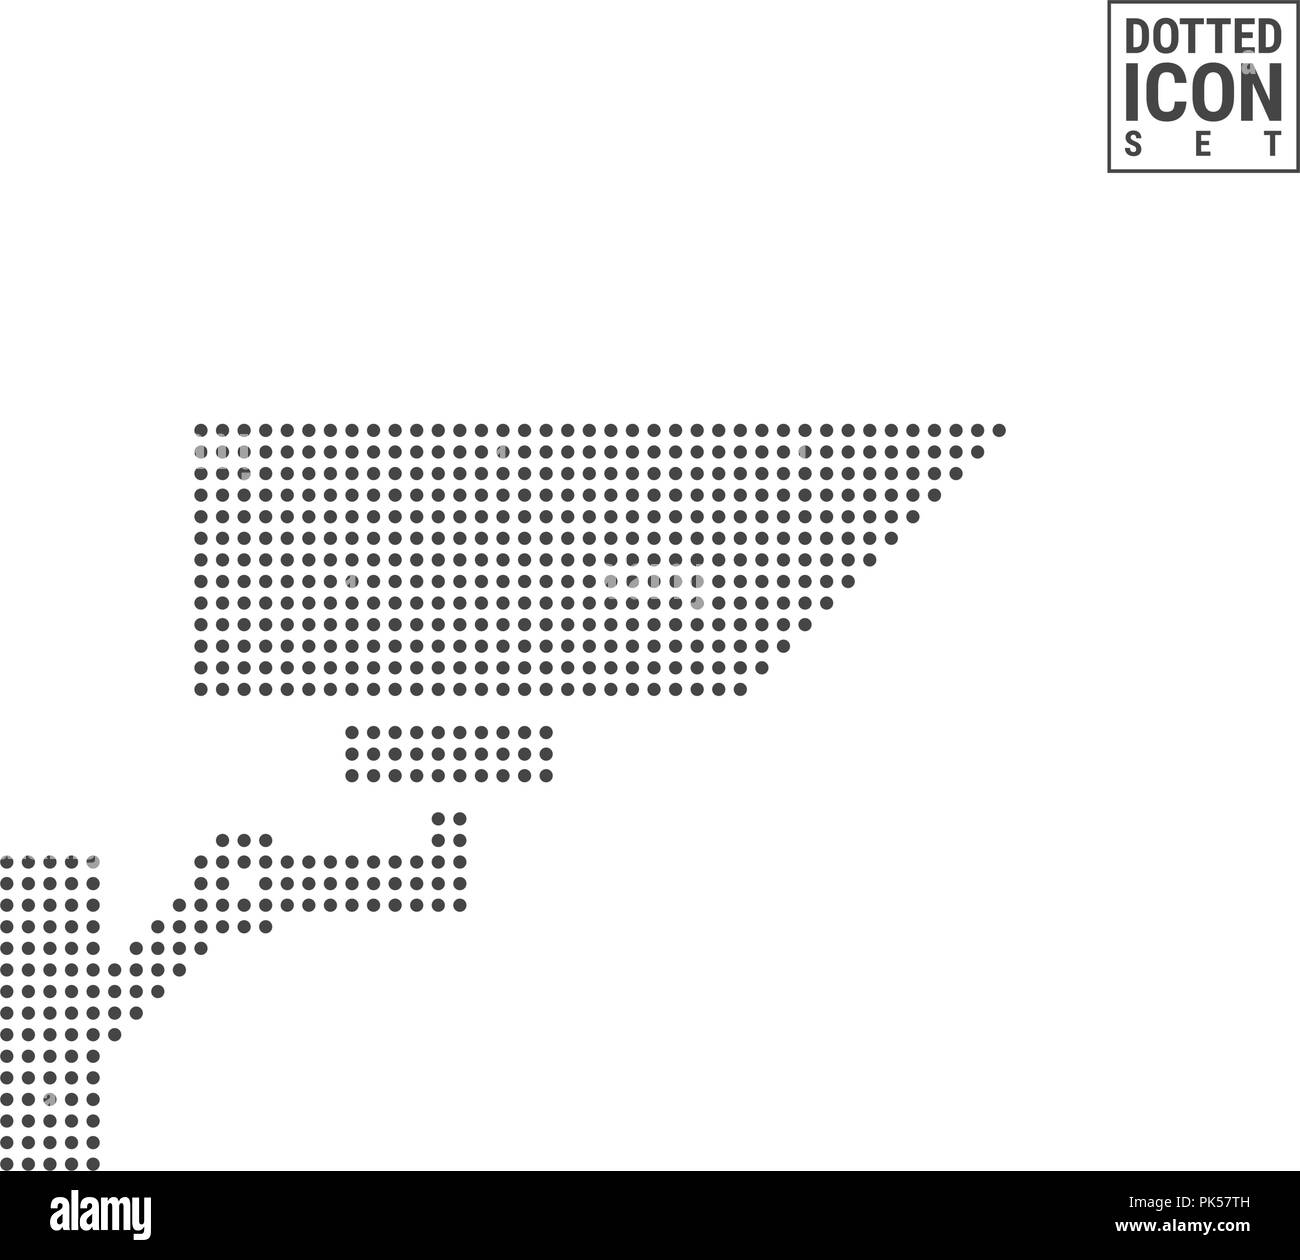 Surveillance Camera Dot Pattern Icon. Security, Observation Camera Dotted Icon Isolated on White. Vector Background, Design Template. Can Be Used for Advertising, Web and Mobile UI. Stock Vector